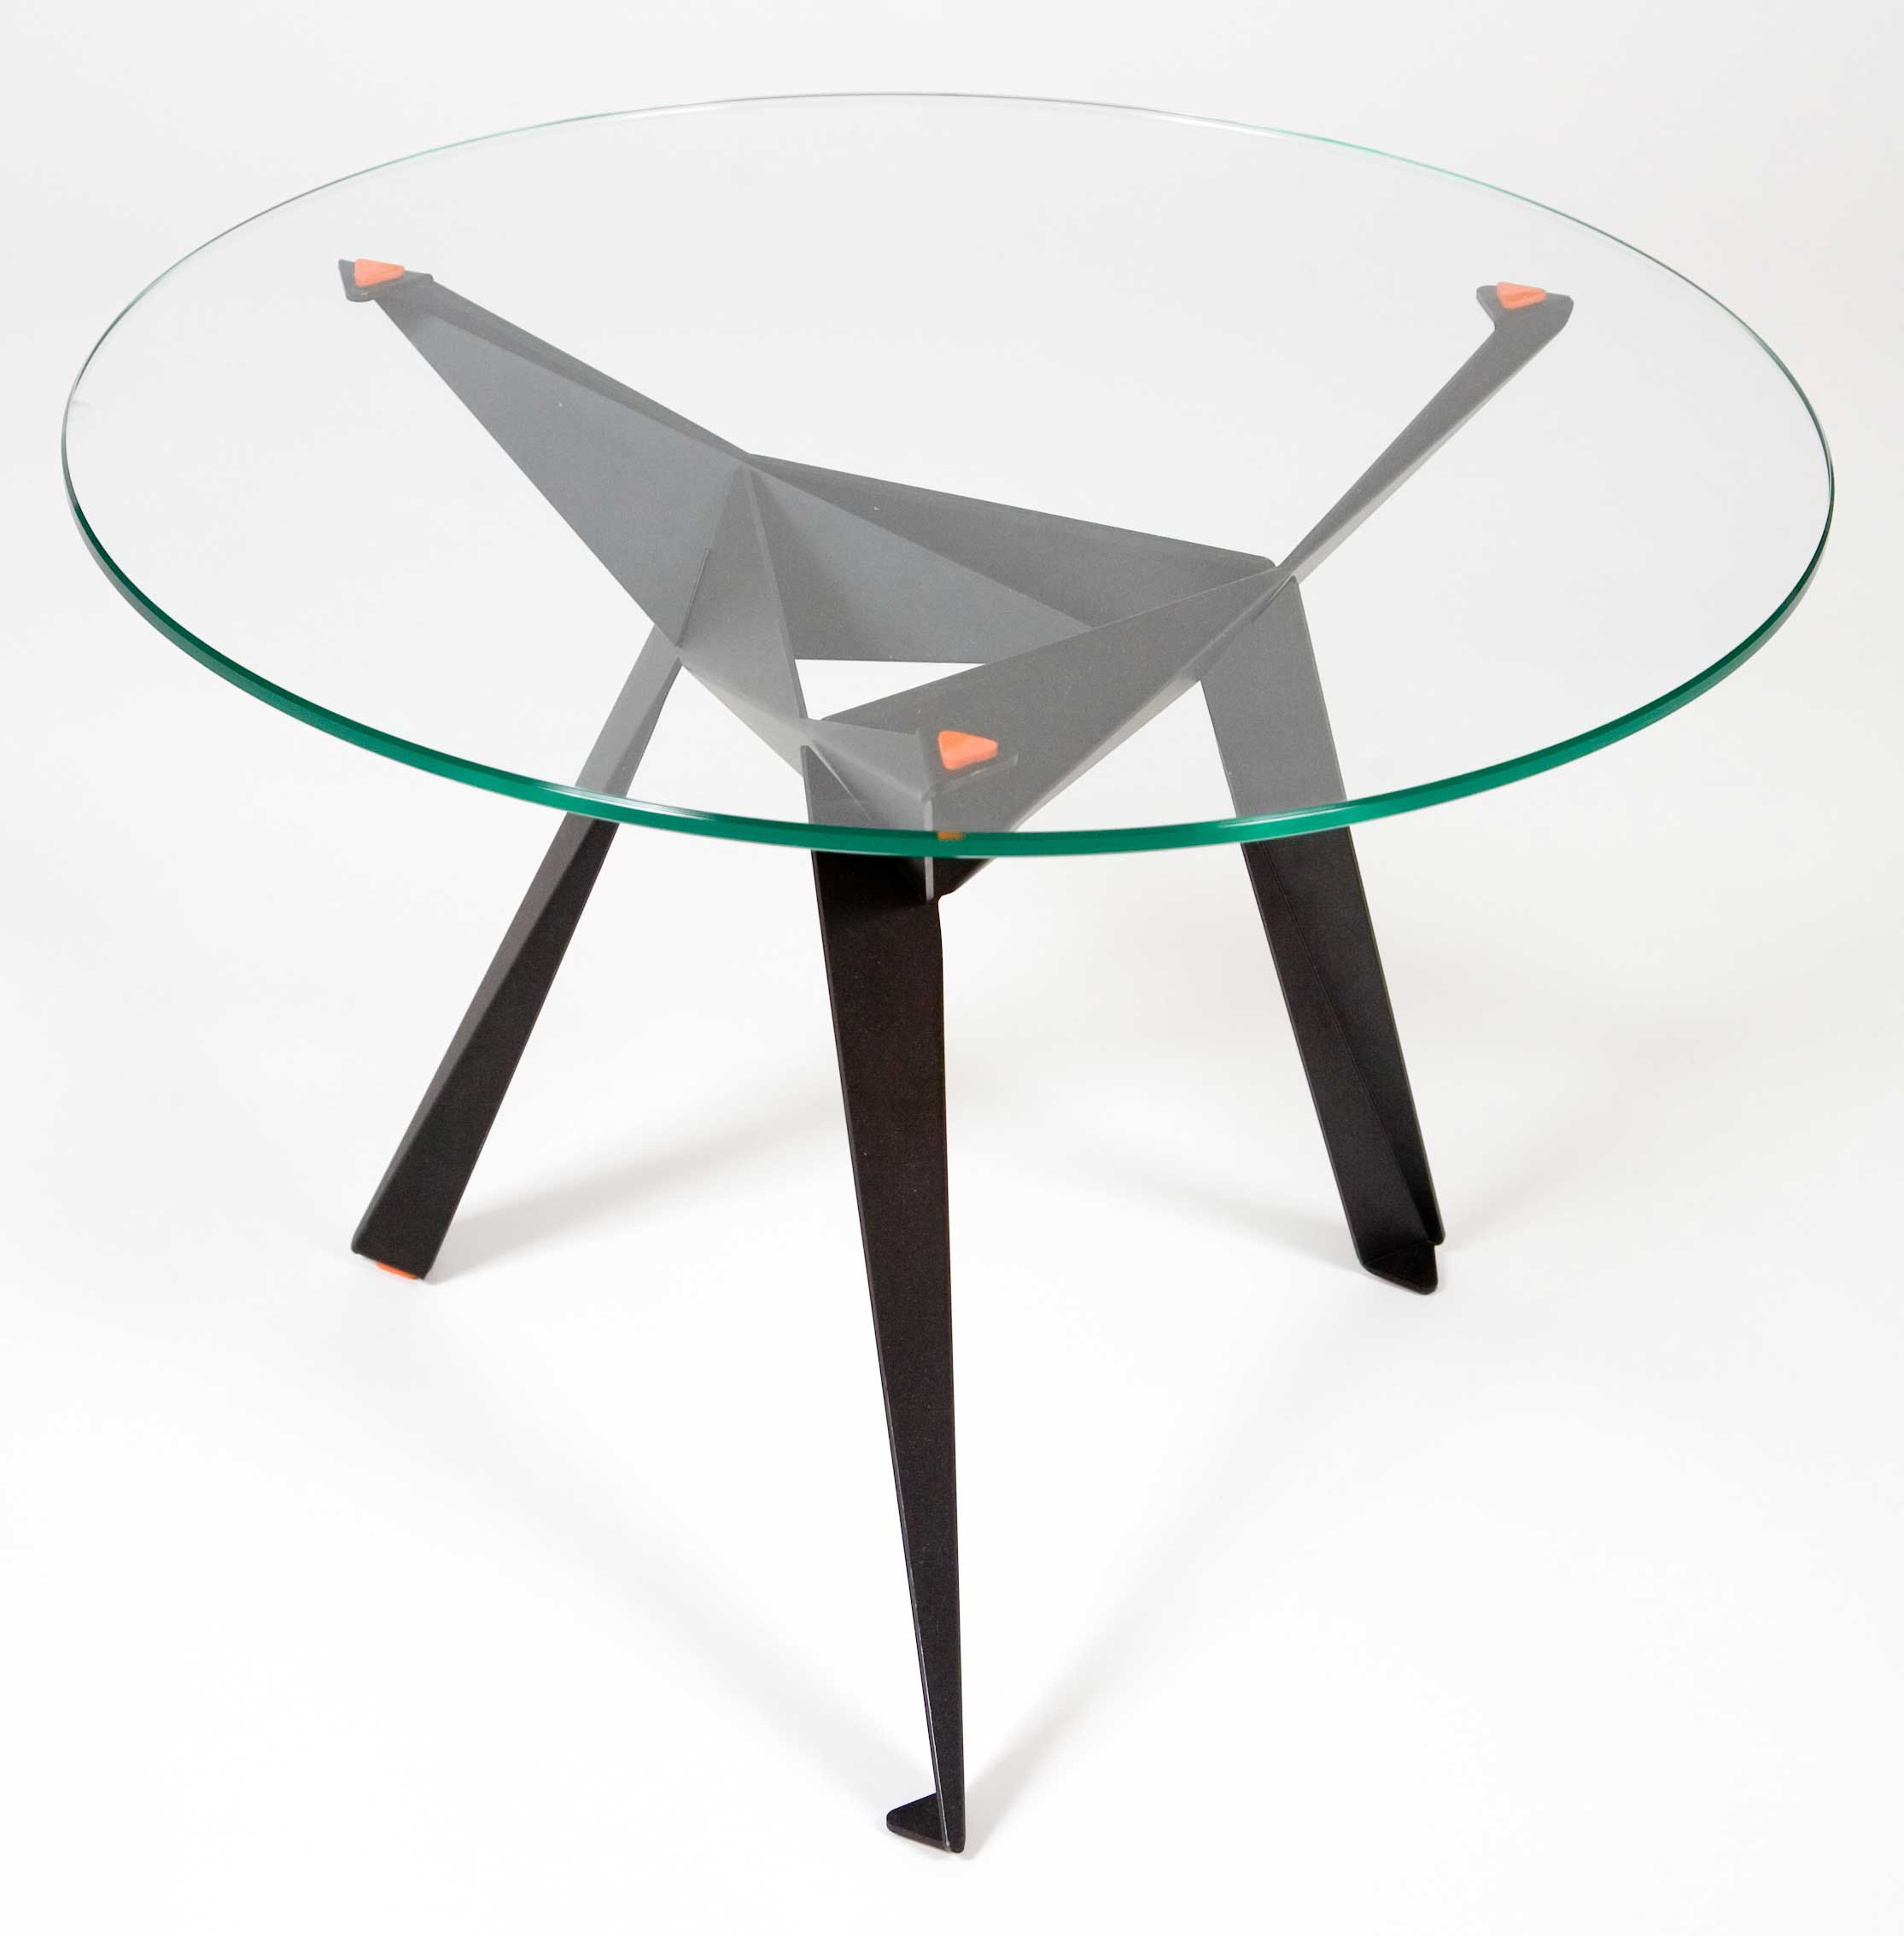 glass desk table tops. Round Glass Desk Table Tops With Origami Feet From Metal